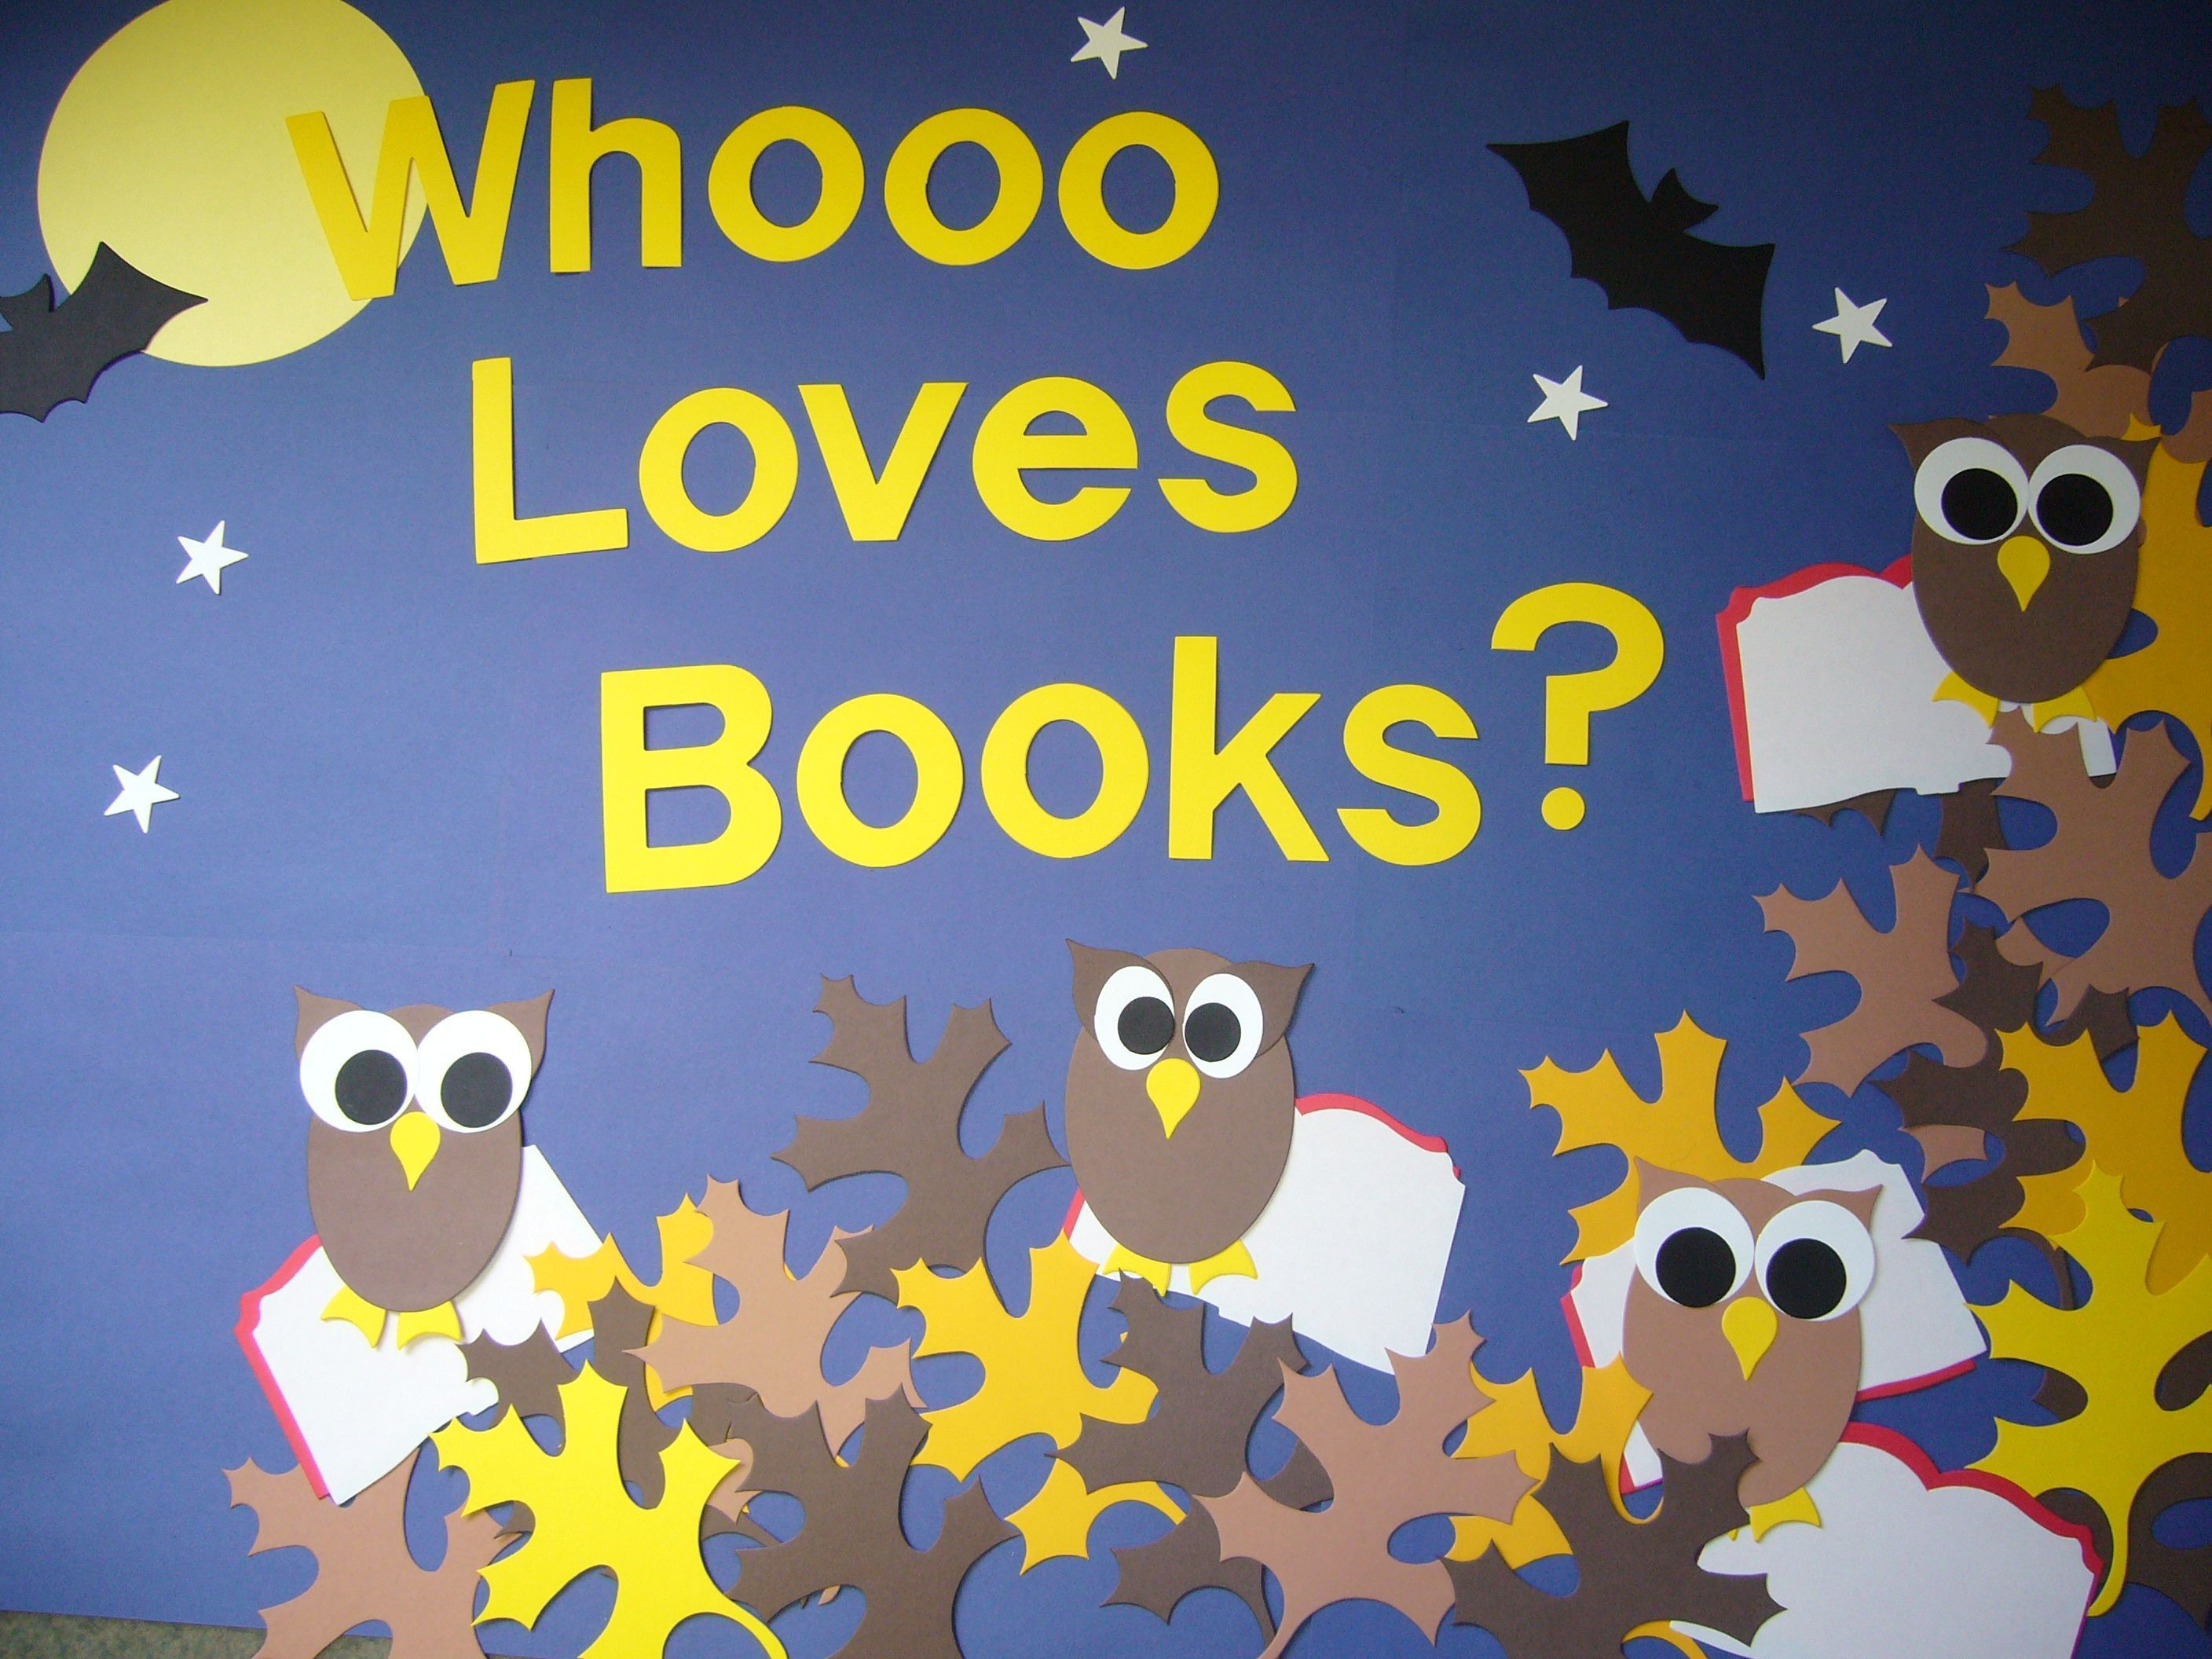 Whoooo Loves Books? with owls and autumn leaves is a cute idea for an autumn reading bulletin board display. #fallbulletinboards Whoooo Loves Books? with owls and autumn leaves is a cute idea for an autumn reading bulletin board display. #octoberbulletinboards Whoooo Loves Books? with owls and autumn leaves is a cute idea for an autumn reading bulletin board display. #fallbulletinboards Whoooo Loves Books? with owls and autumn leaves is a cute idea for an autumn reading bulletin board display. #octoberbulletinboards